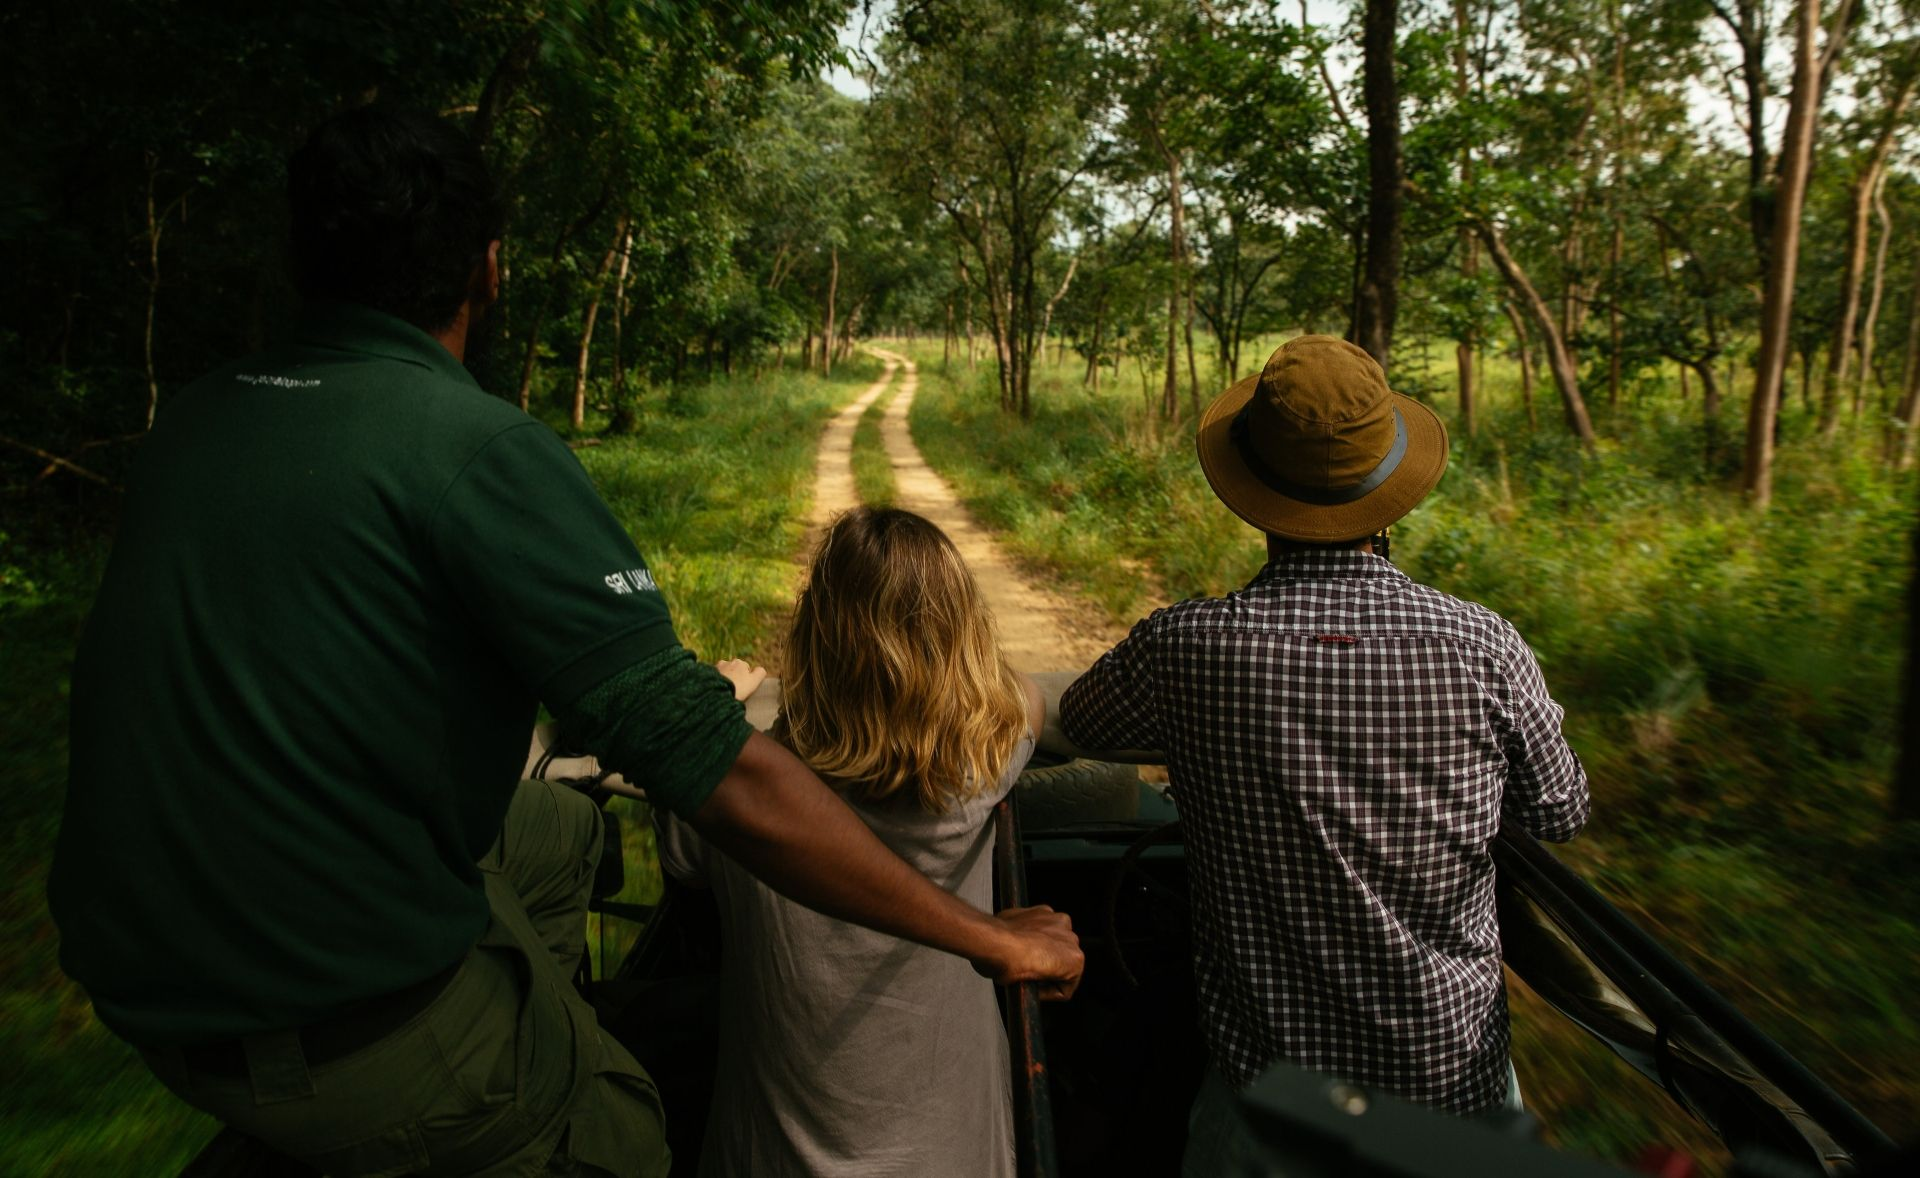 Game drives with your guide